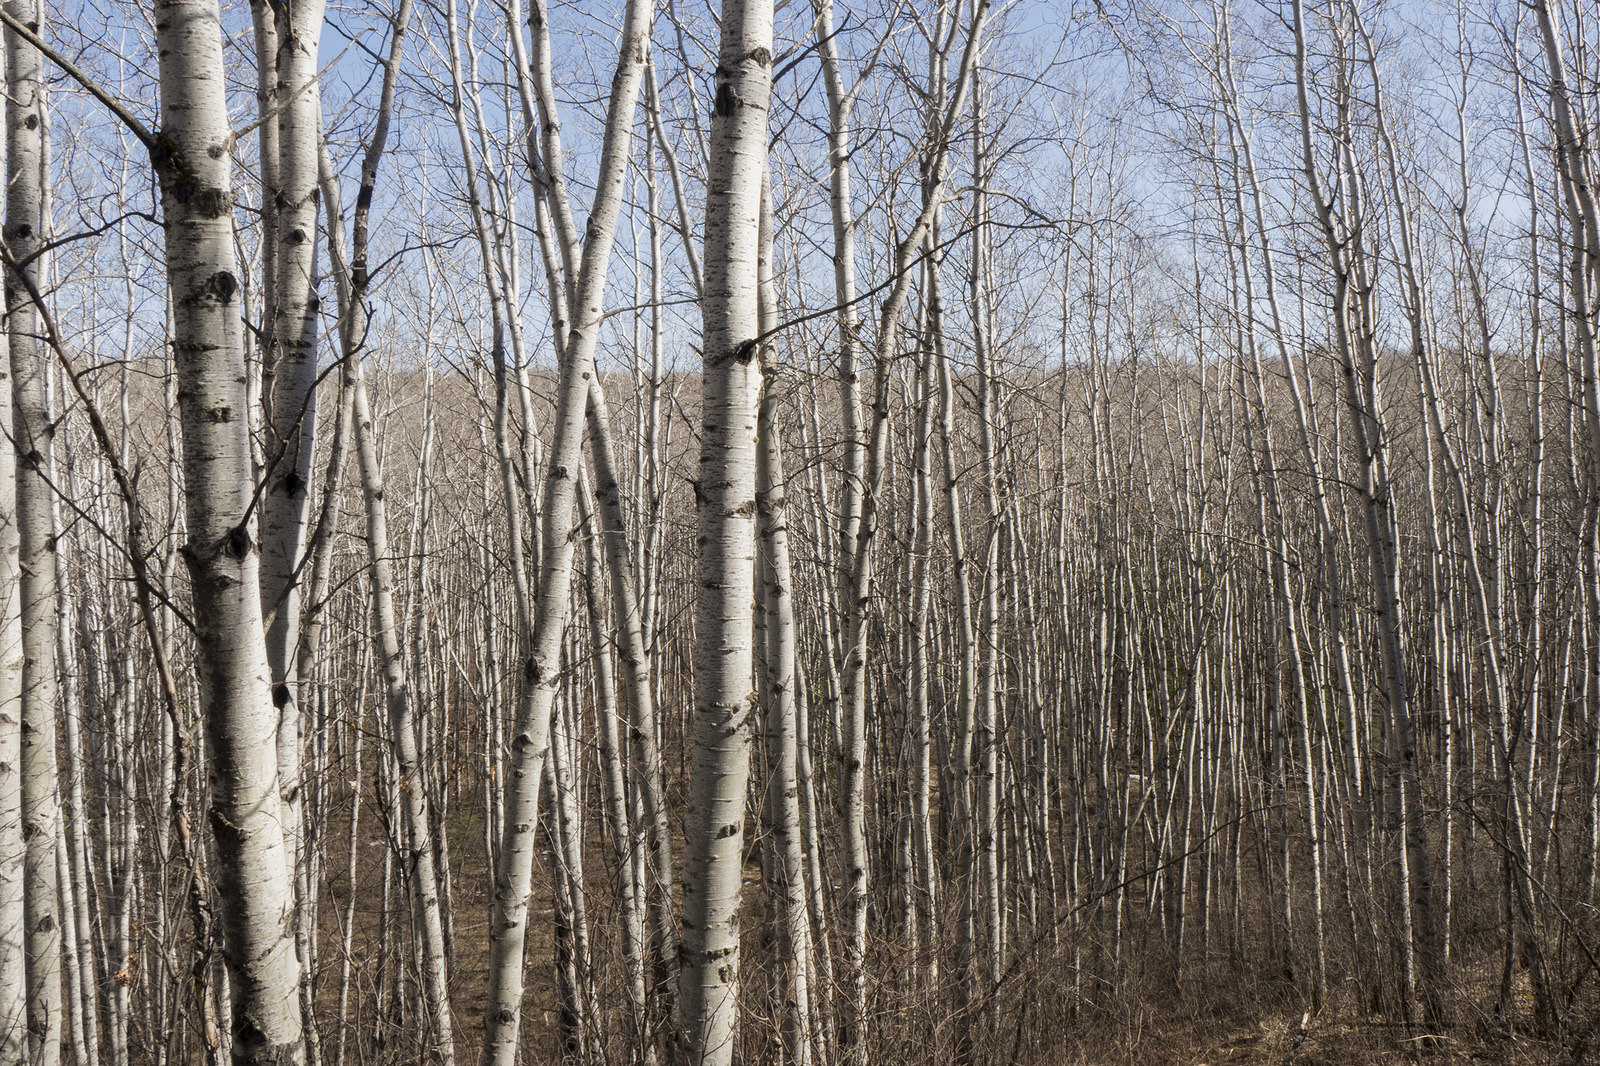 """Smokey"" woods — the grey canopy of nude trembling aspen (poplar) trees"